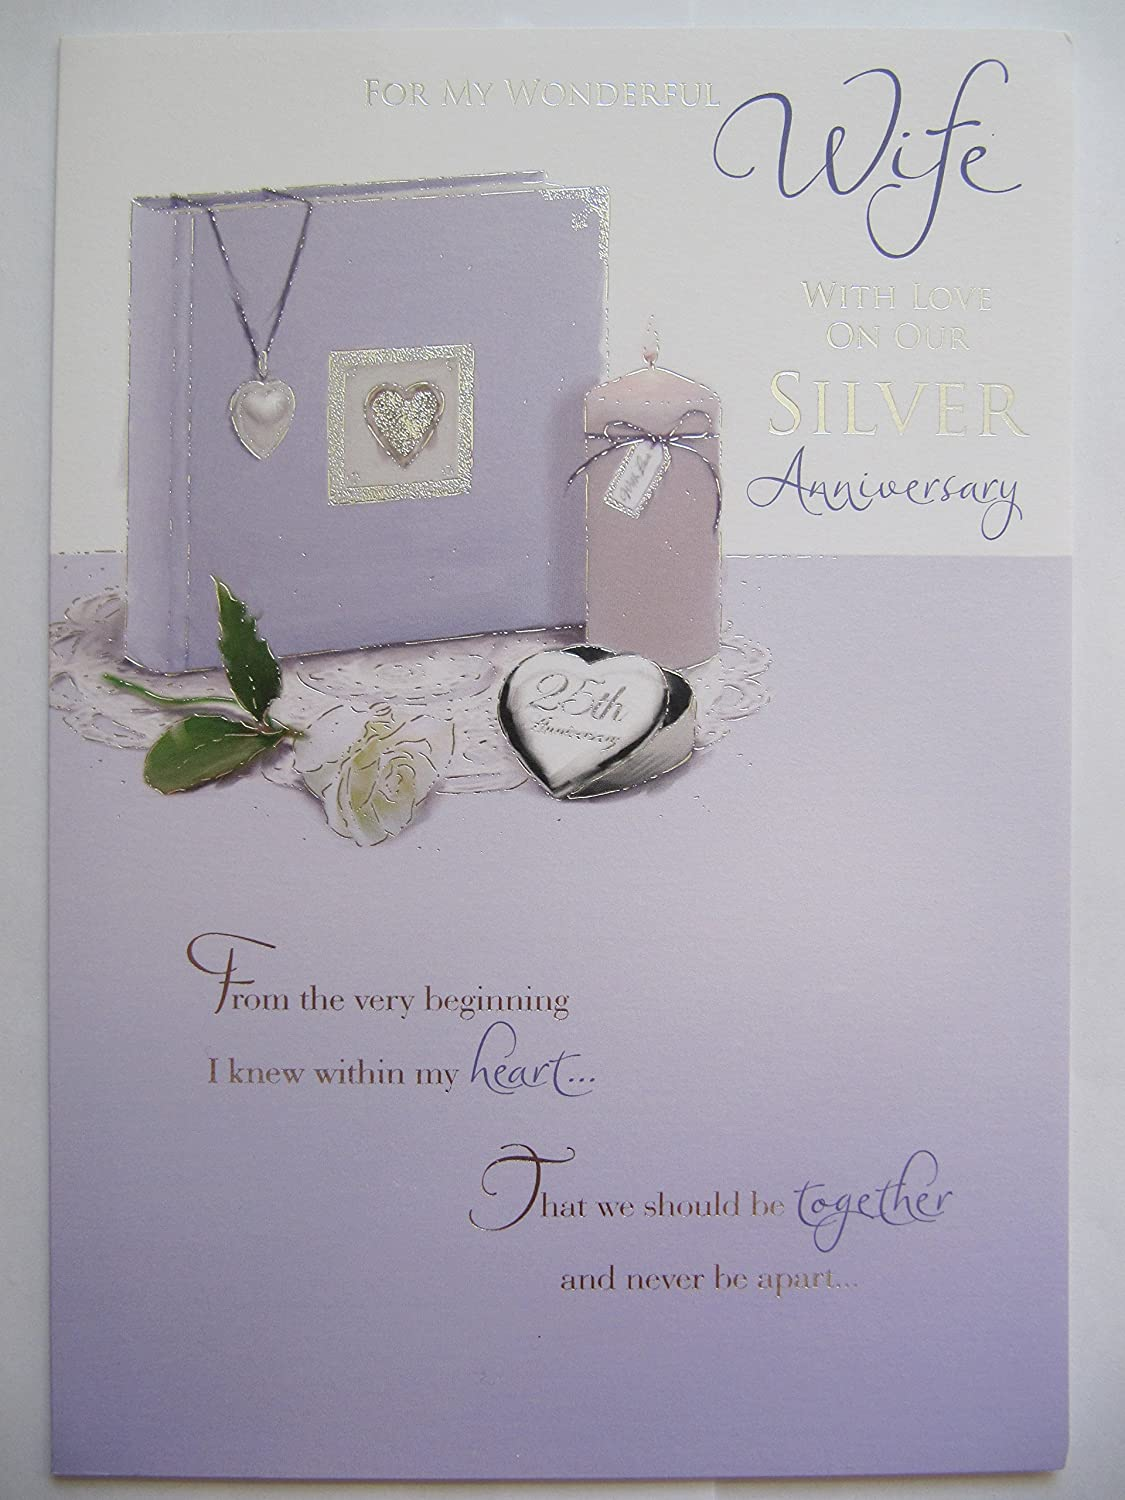 25th anniversary cards for wife